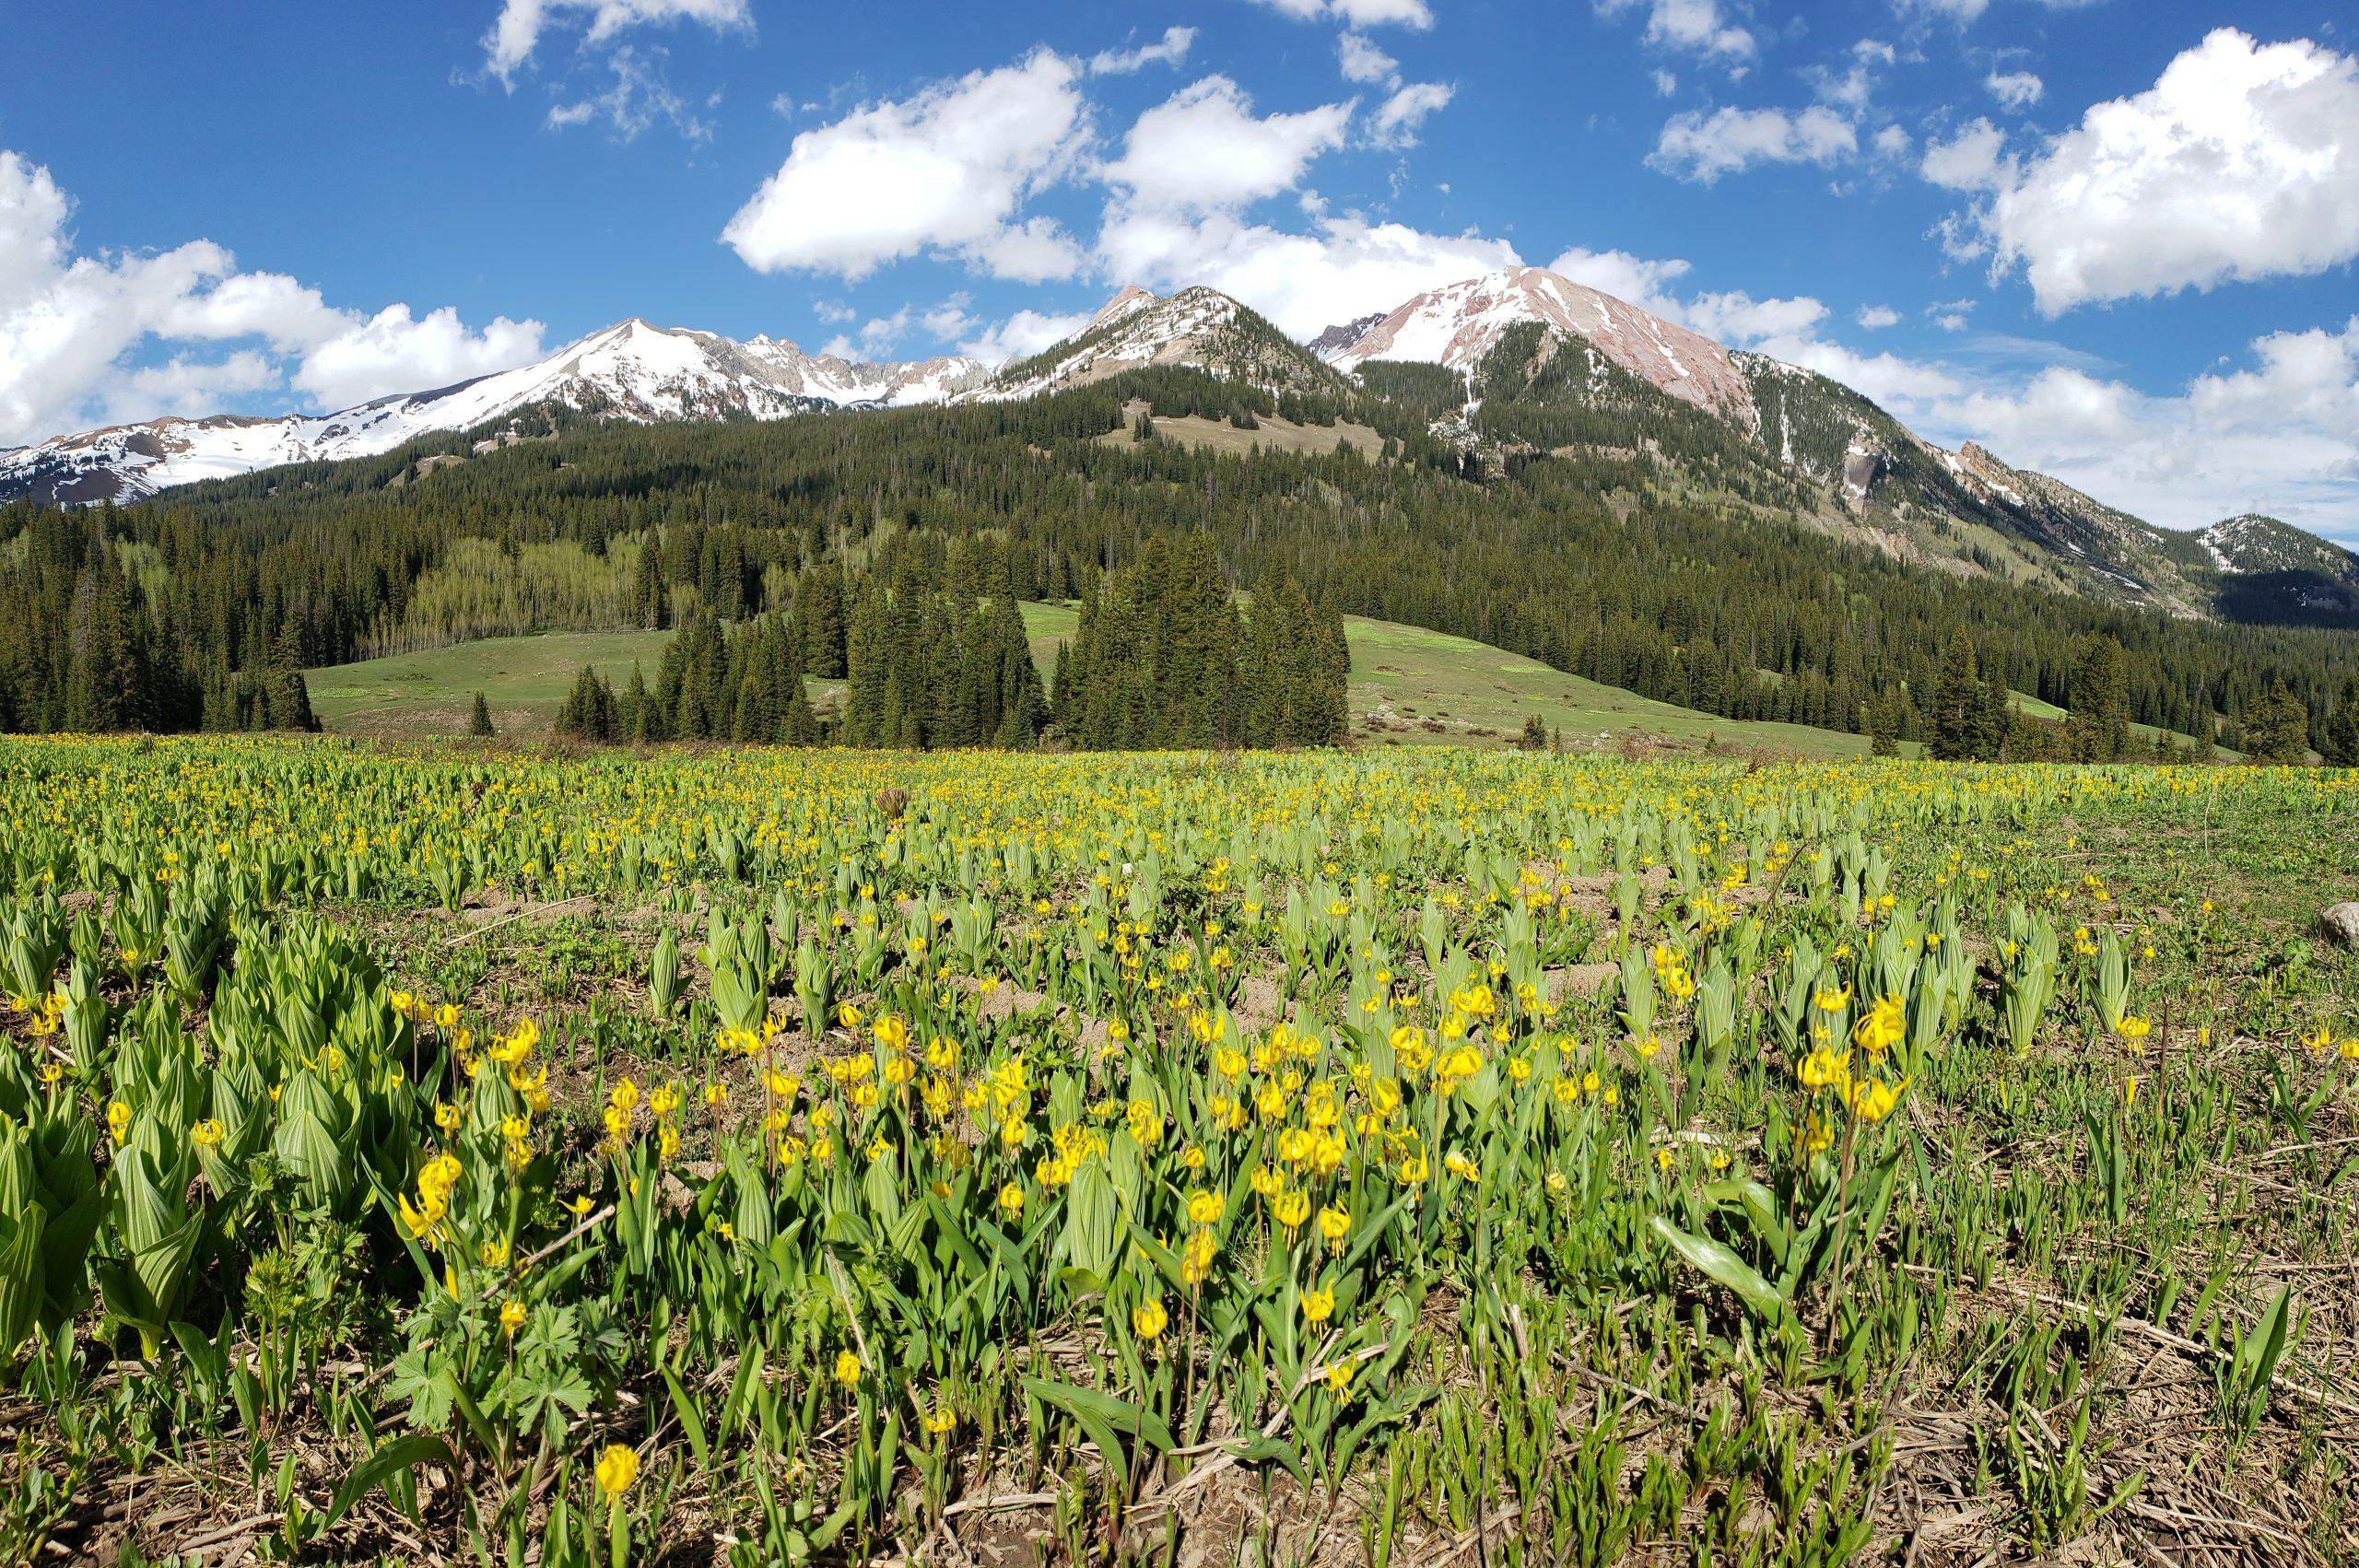 Glacier lilies and Gothic Mountain